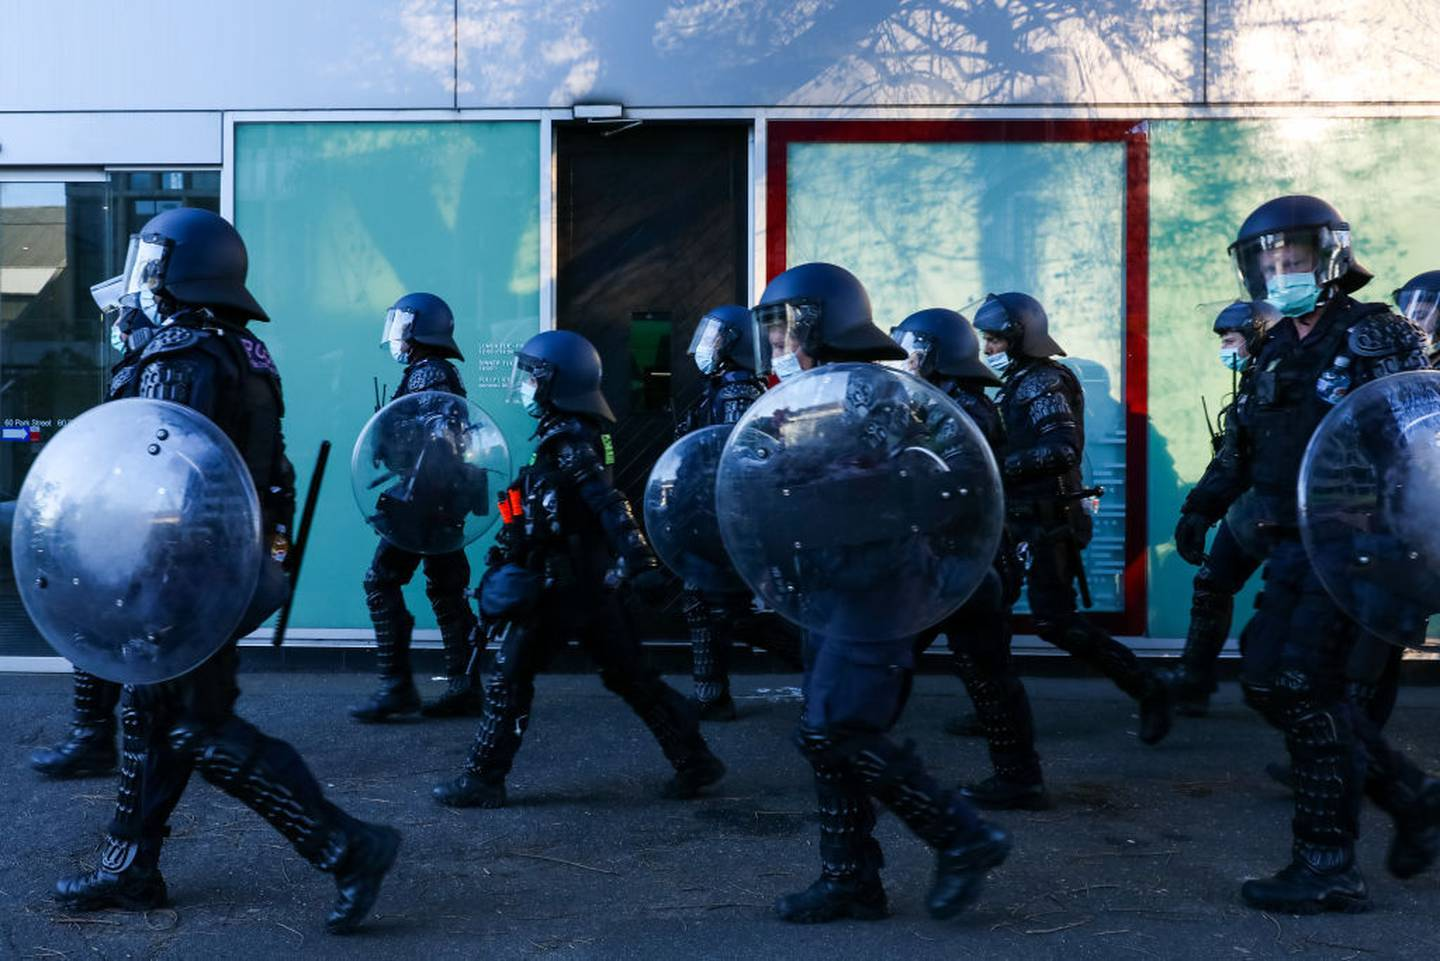 Riot police are seen running towards protestors at the Shrine of Remembrance on September 22, 2021 in Melbourne. Photo / Getty Images